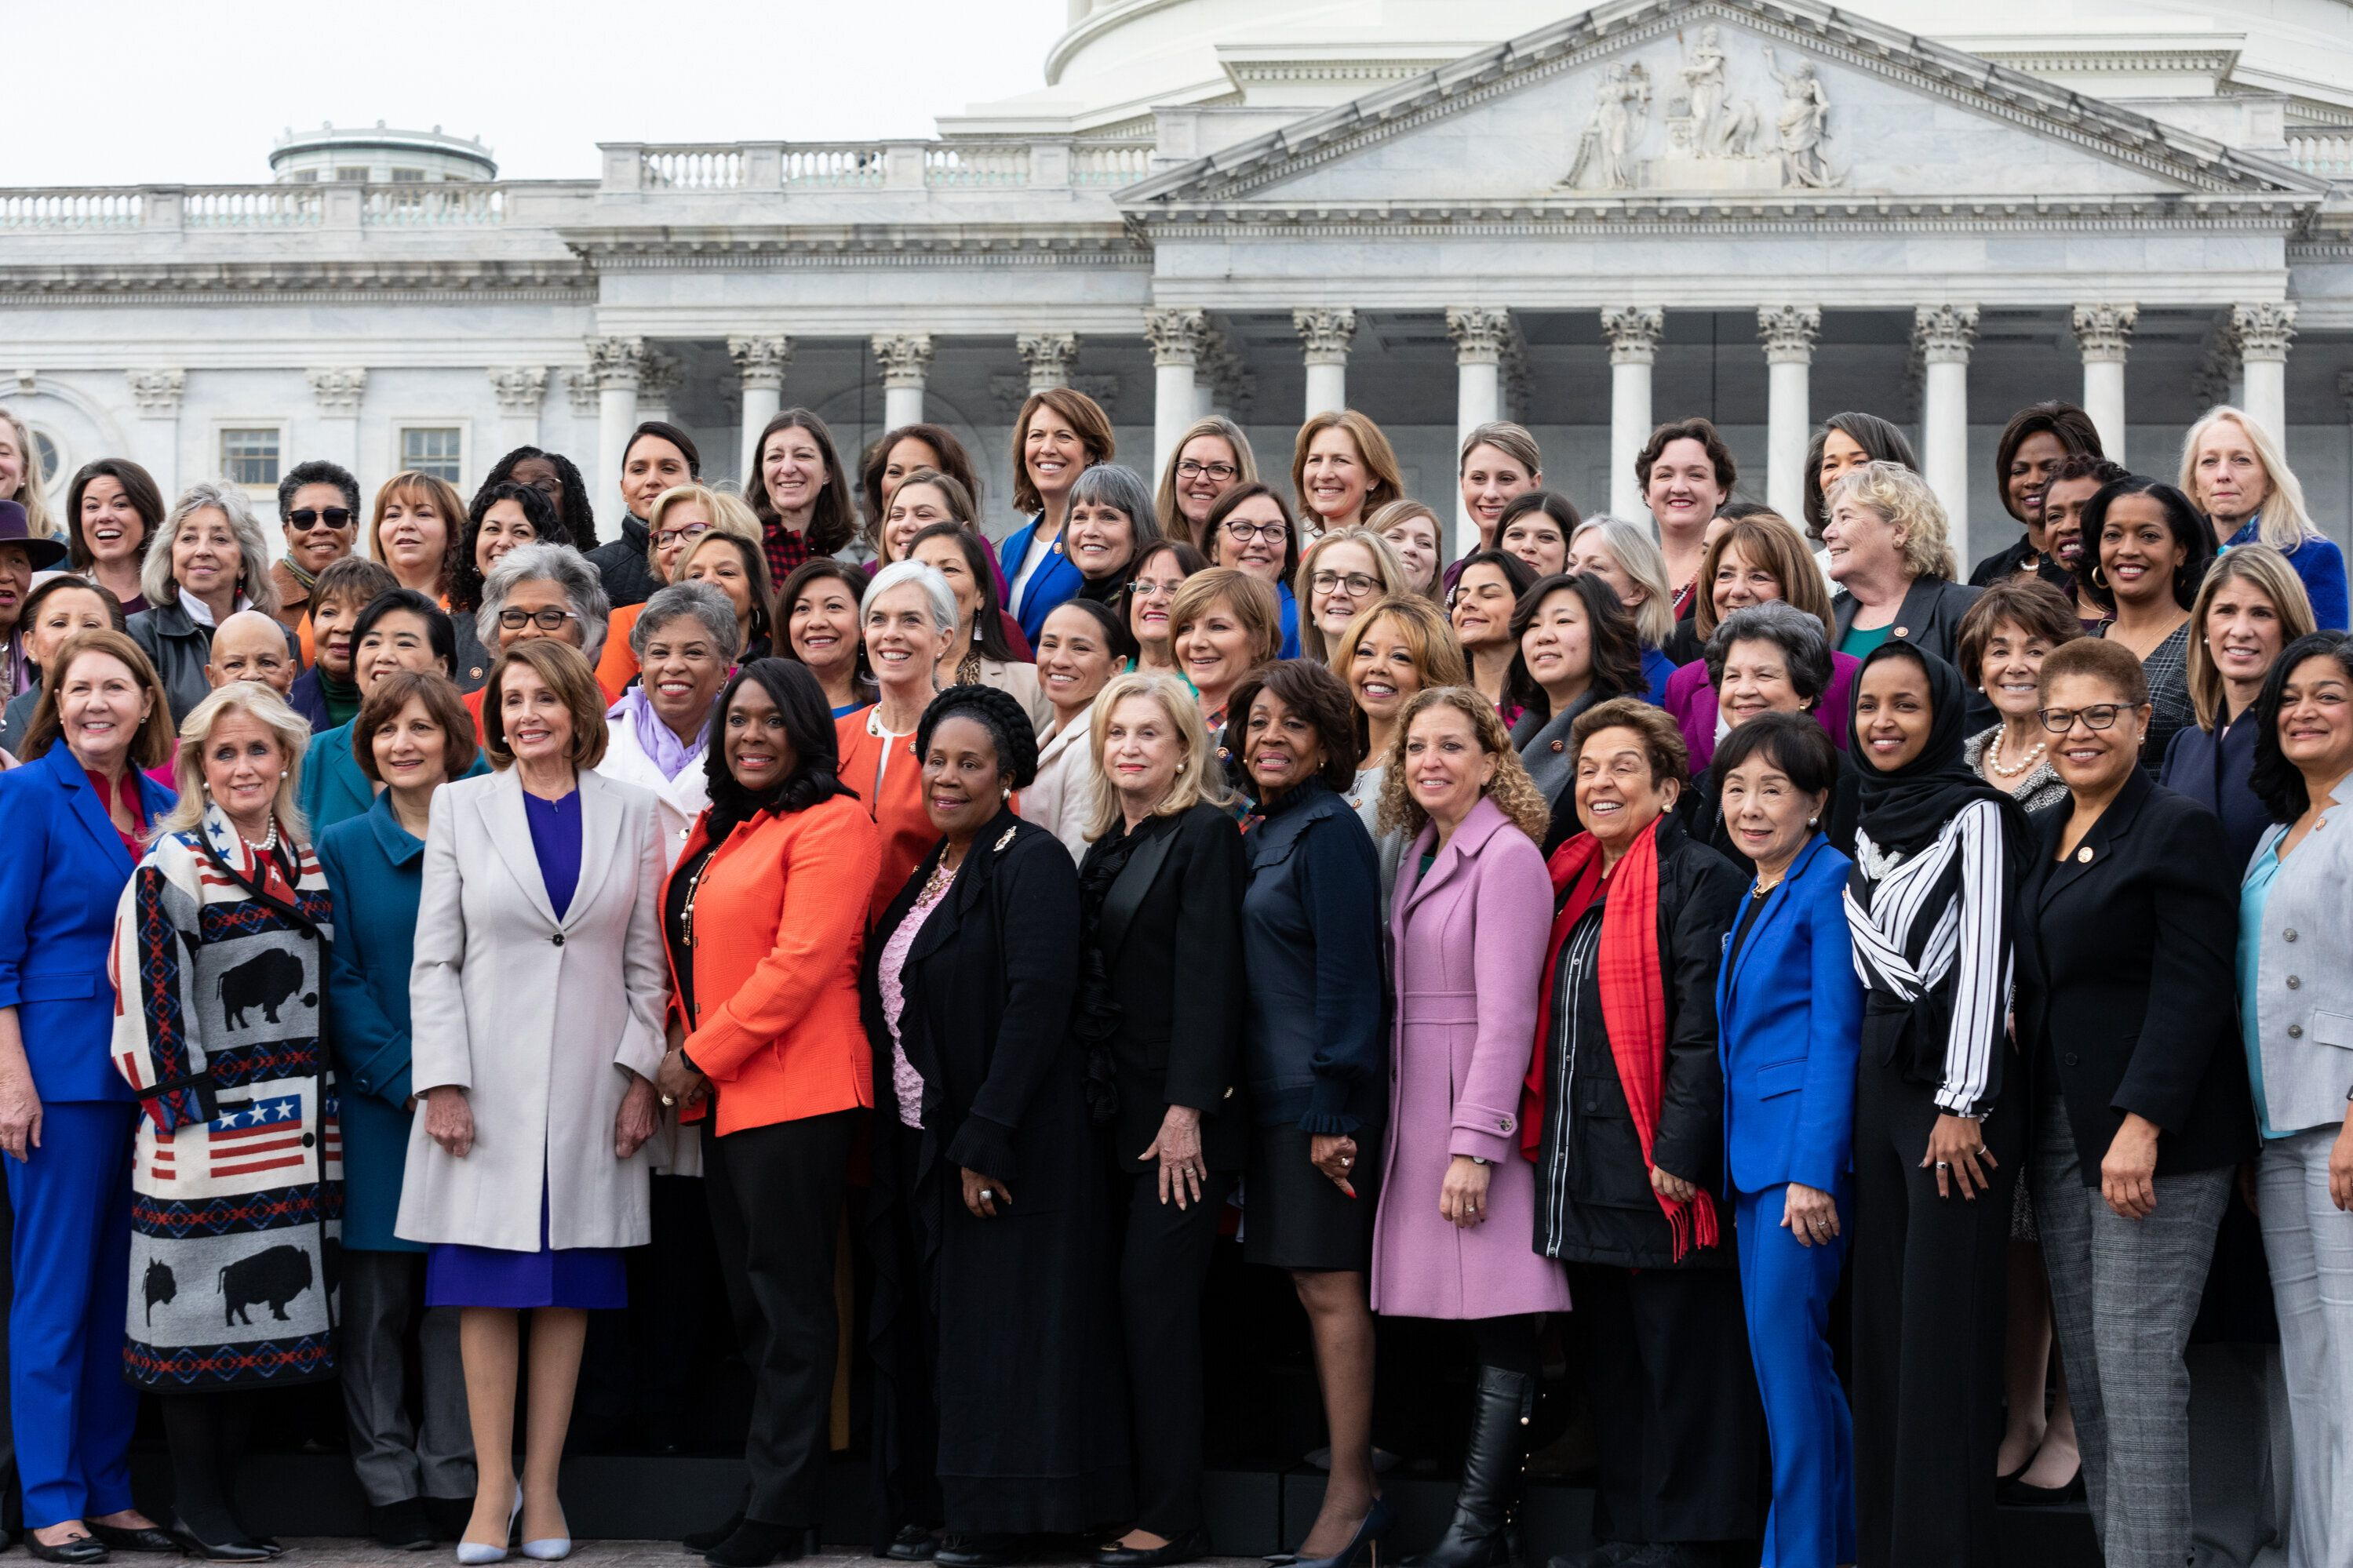 The 2018 elections put nearly 90 Democratic women in the House. On the Republican side, there are just 13.